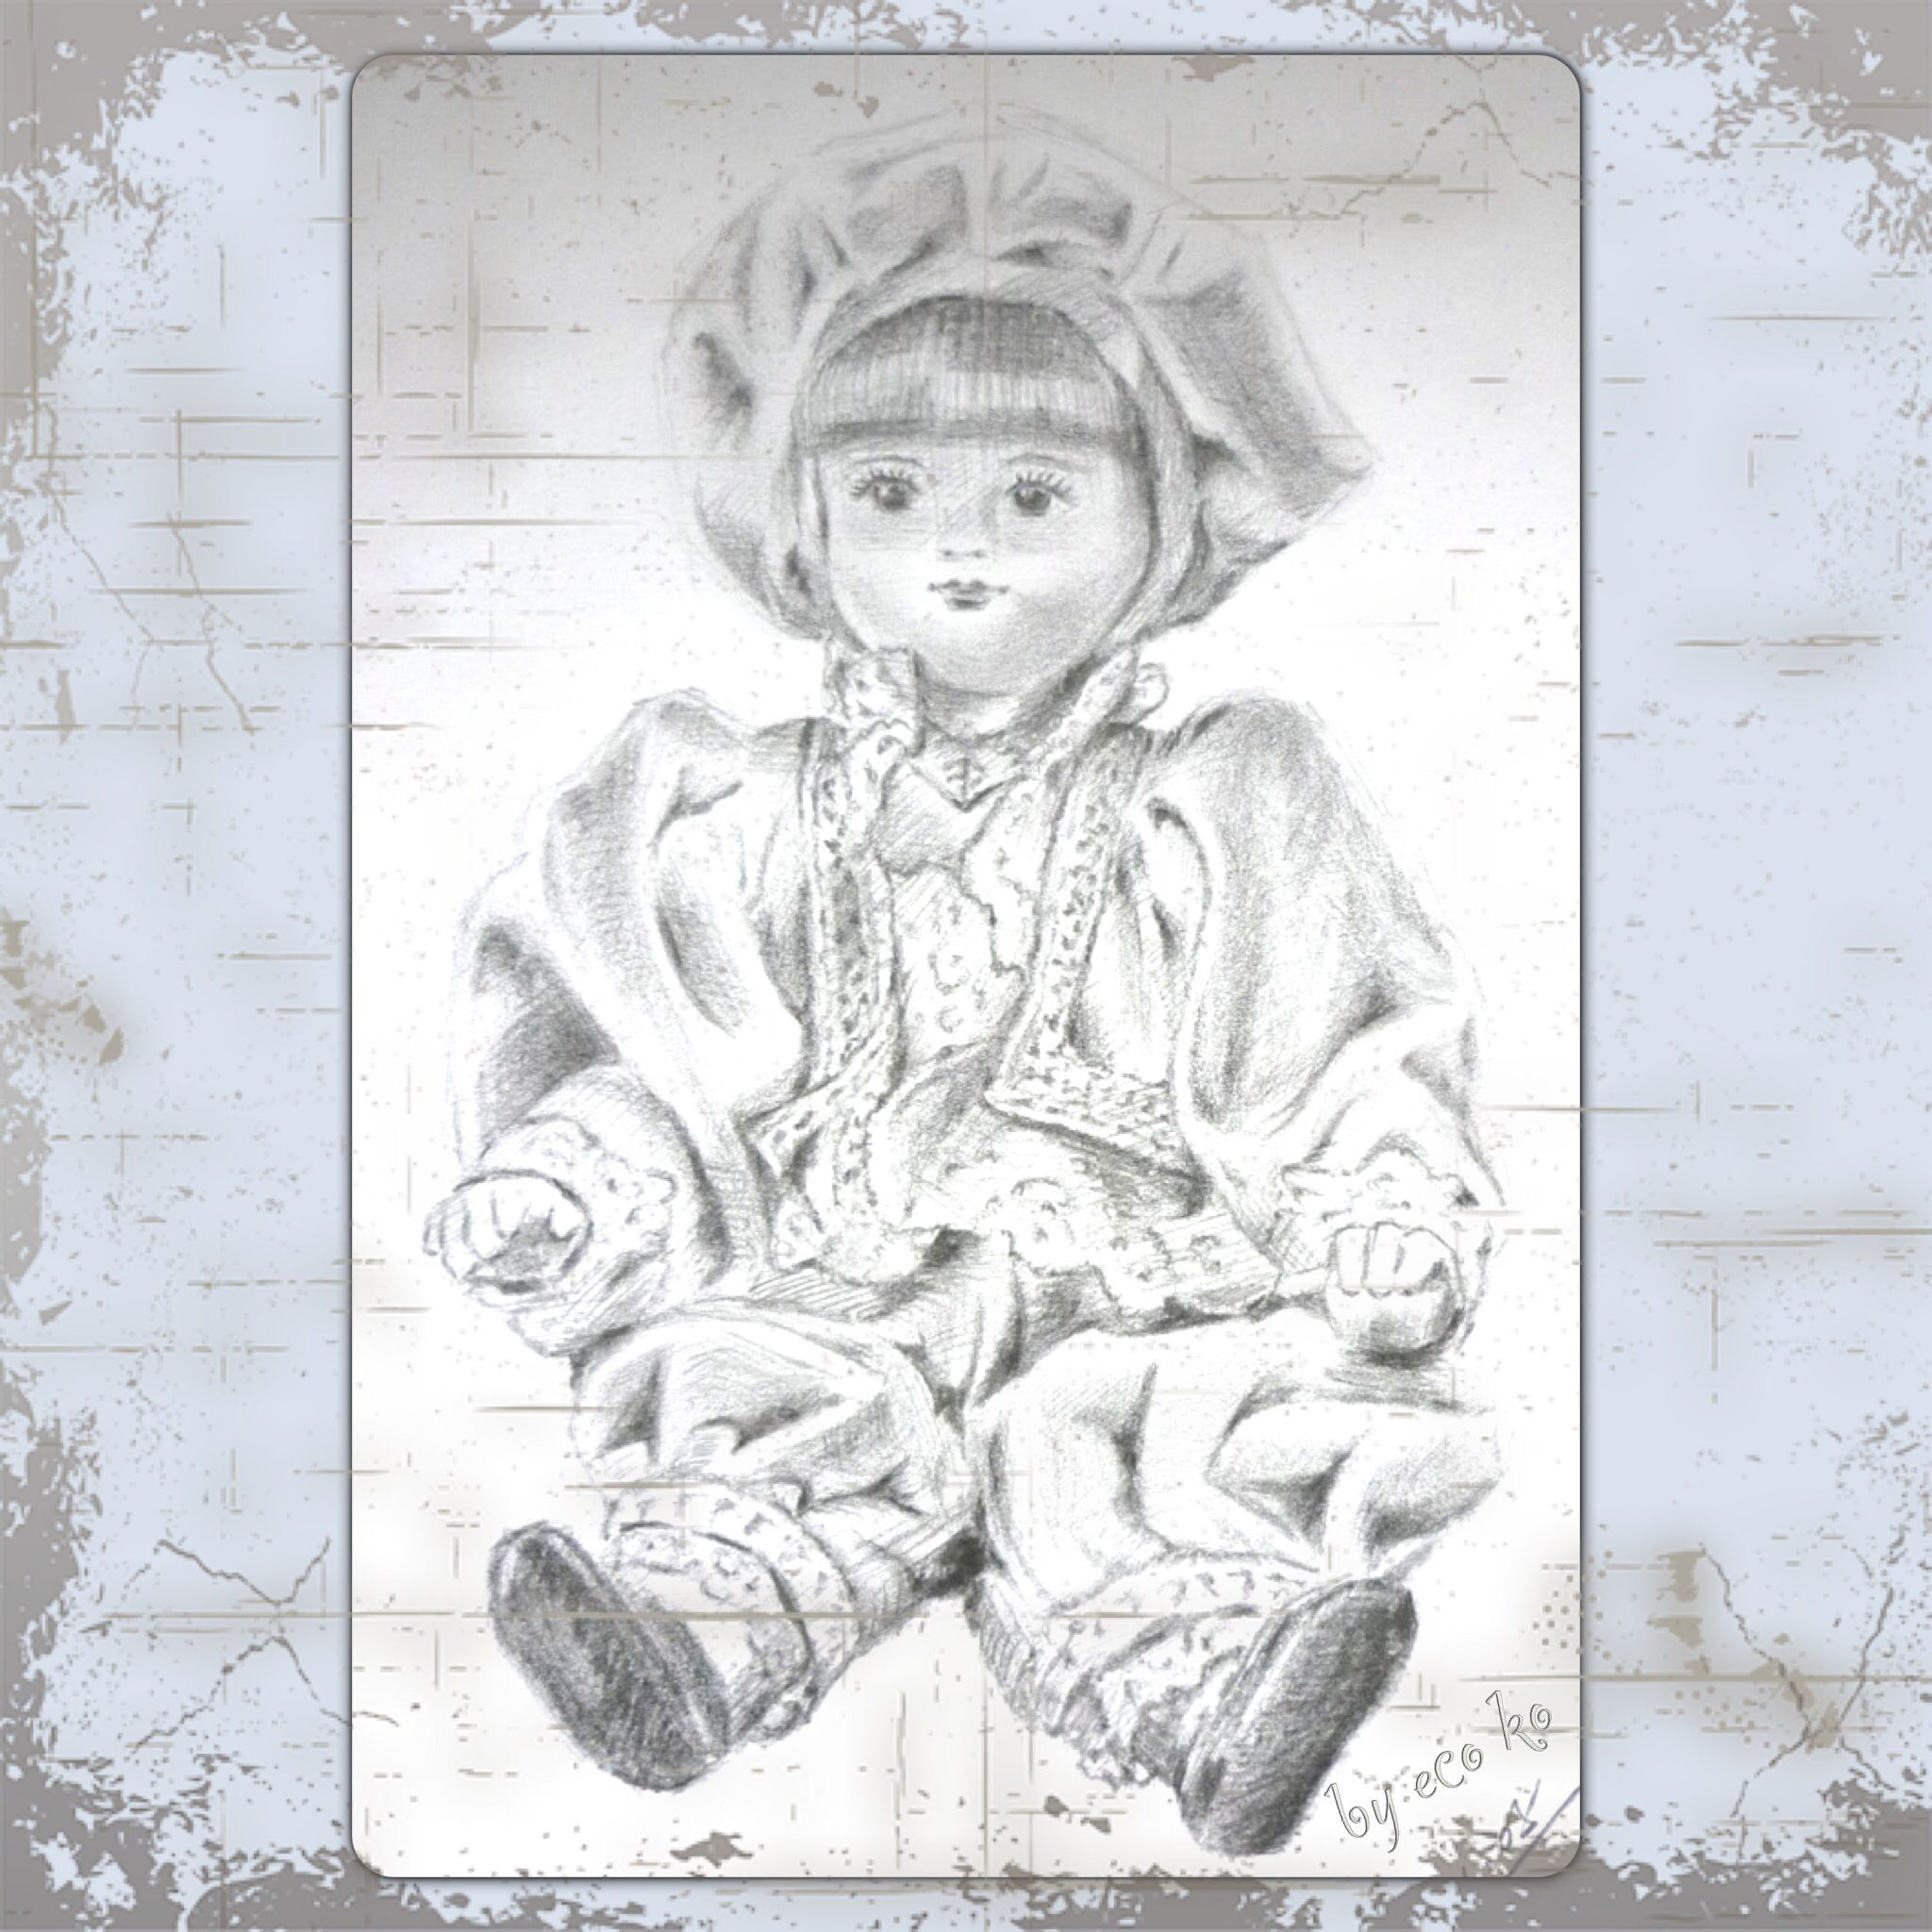 Pencil sketch of a porcelain doll from italy